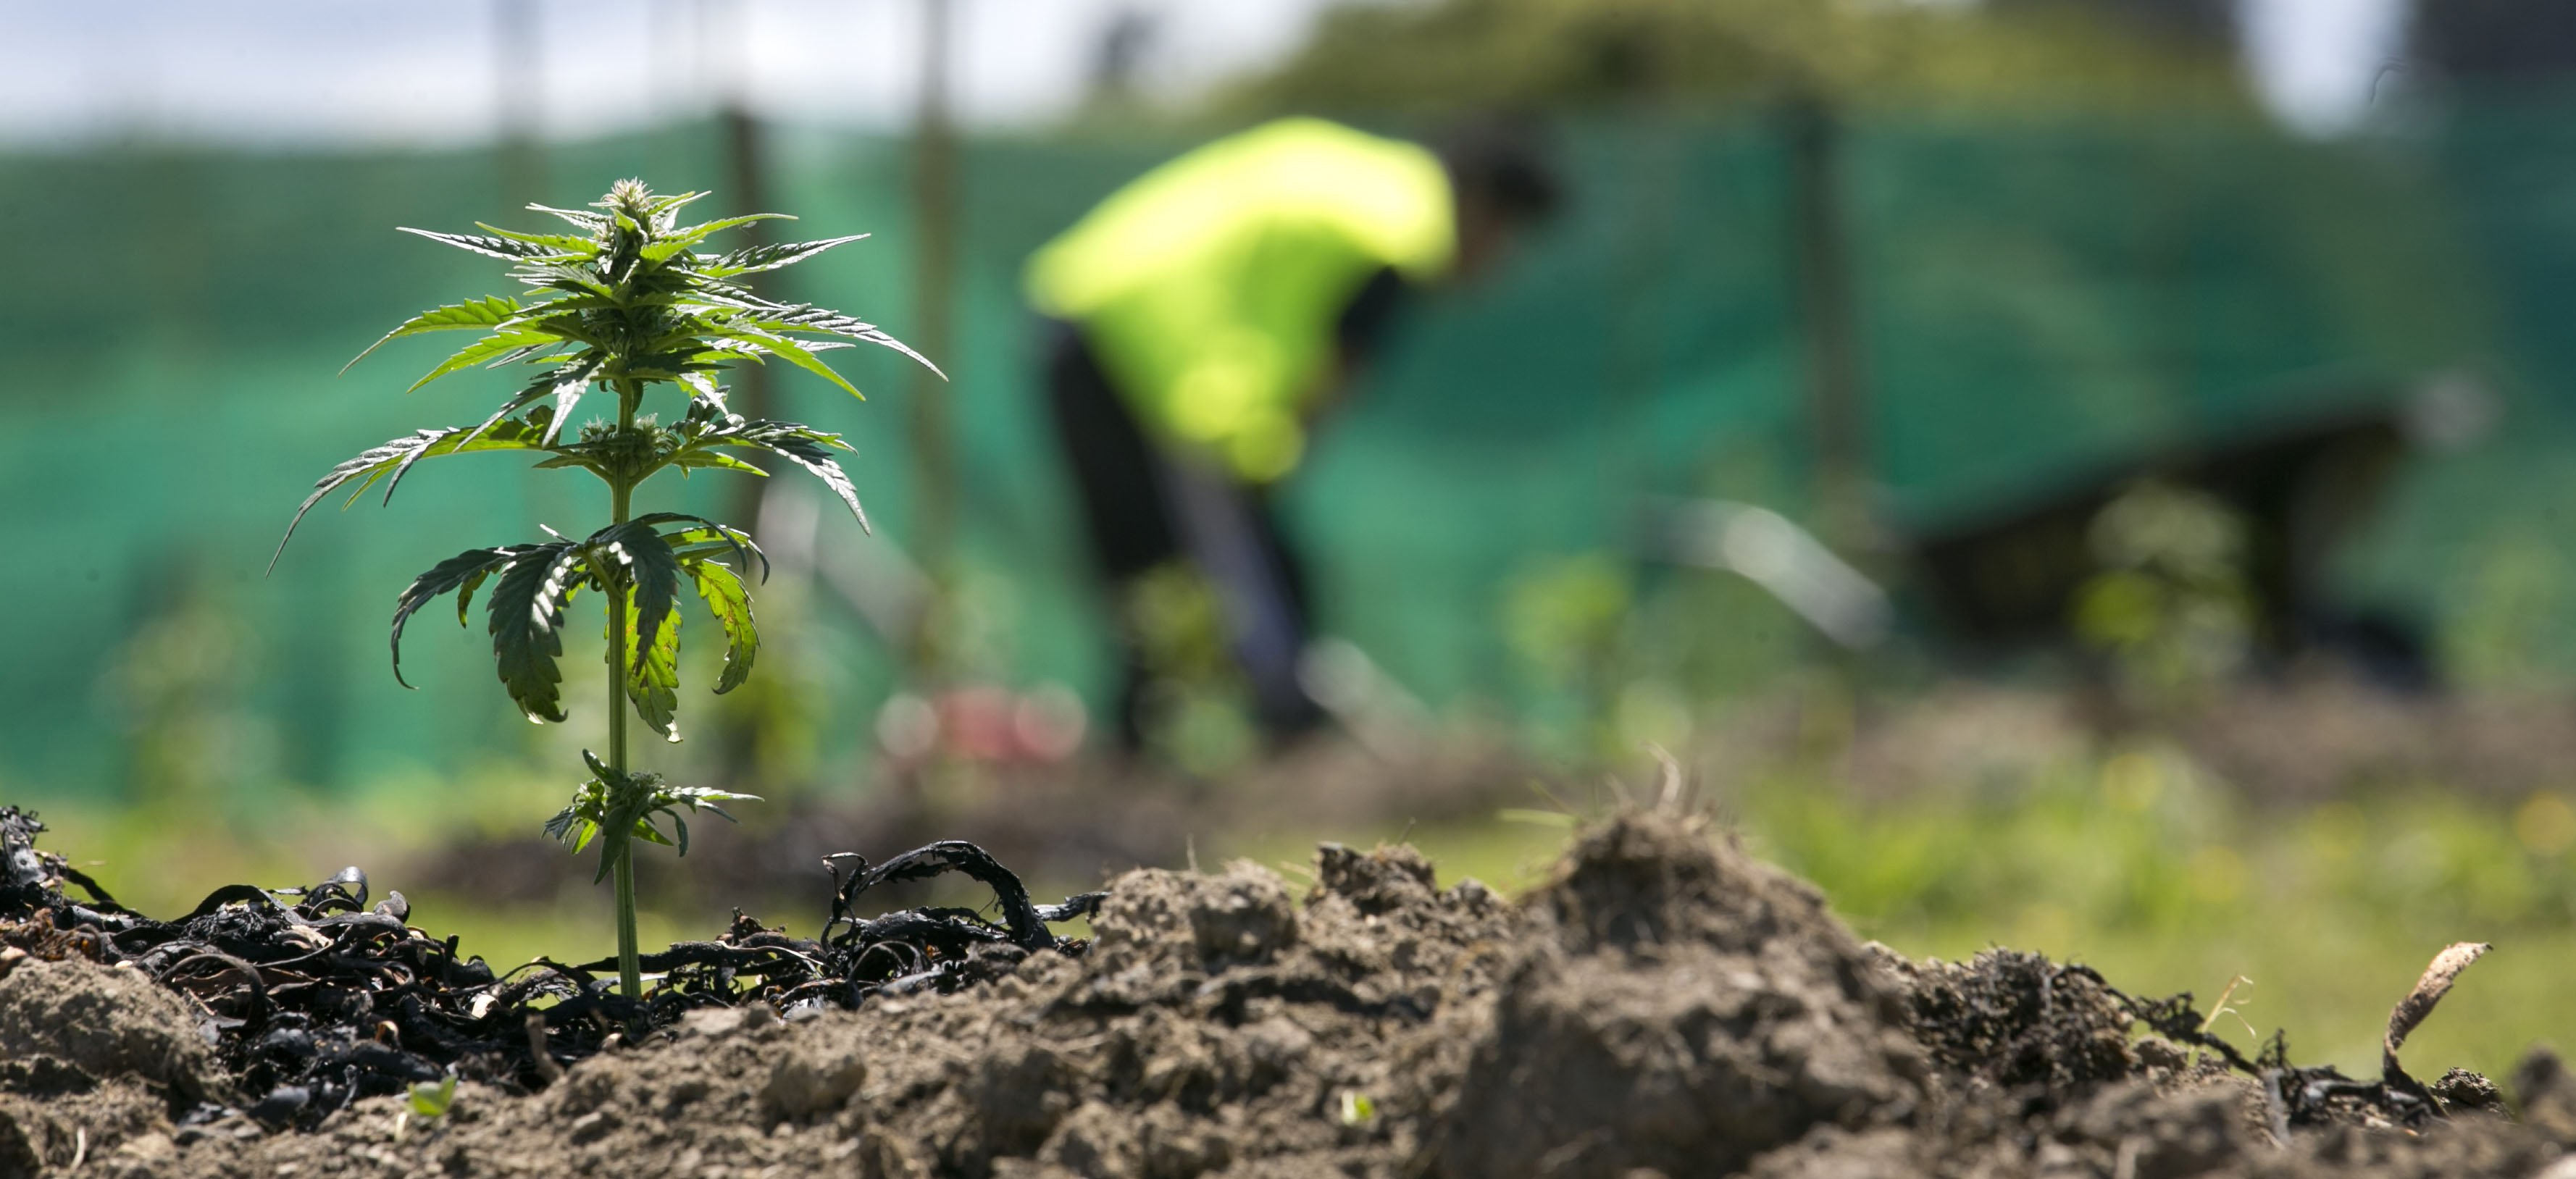 The aim of Hikurangi Cannabis Company is to have a collective of growers using whanau land in the...